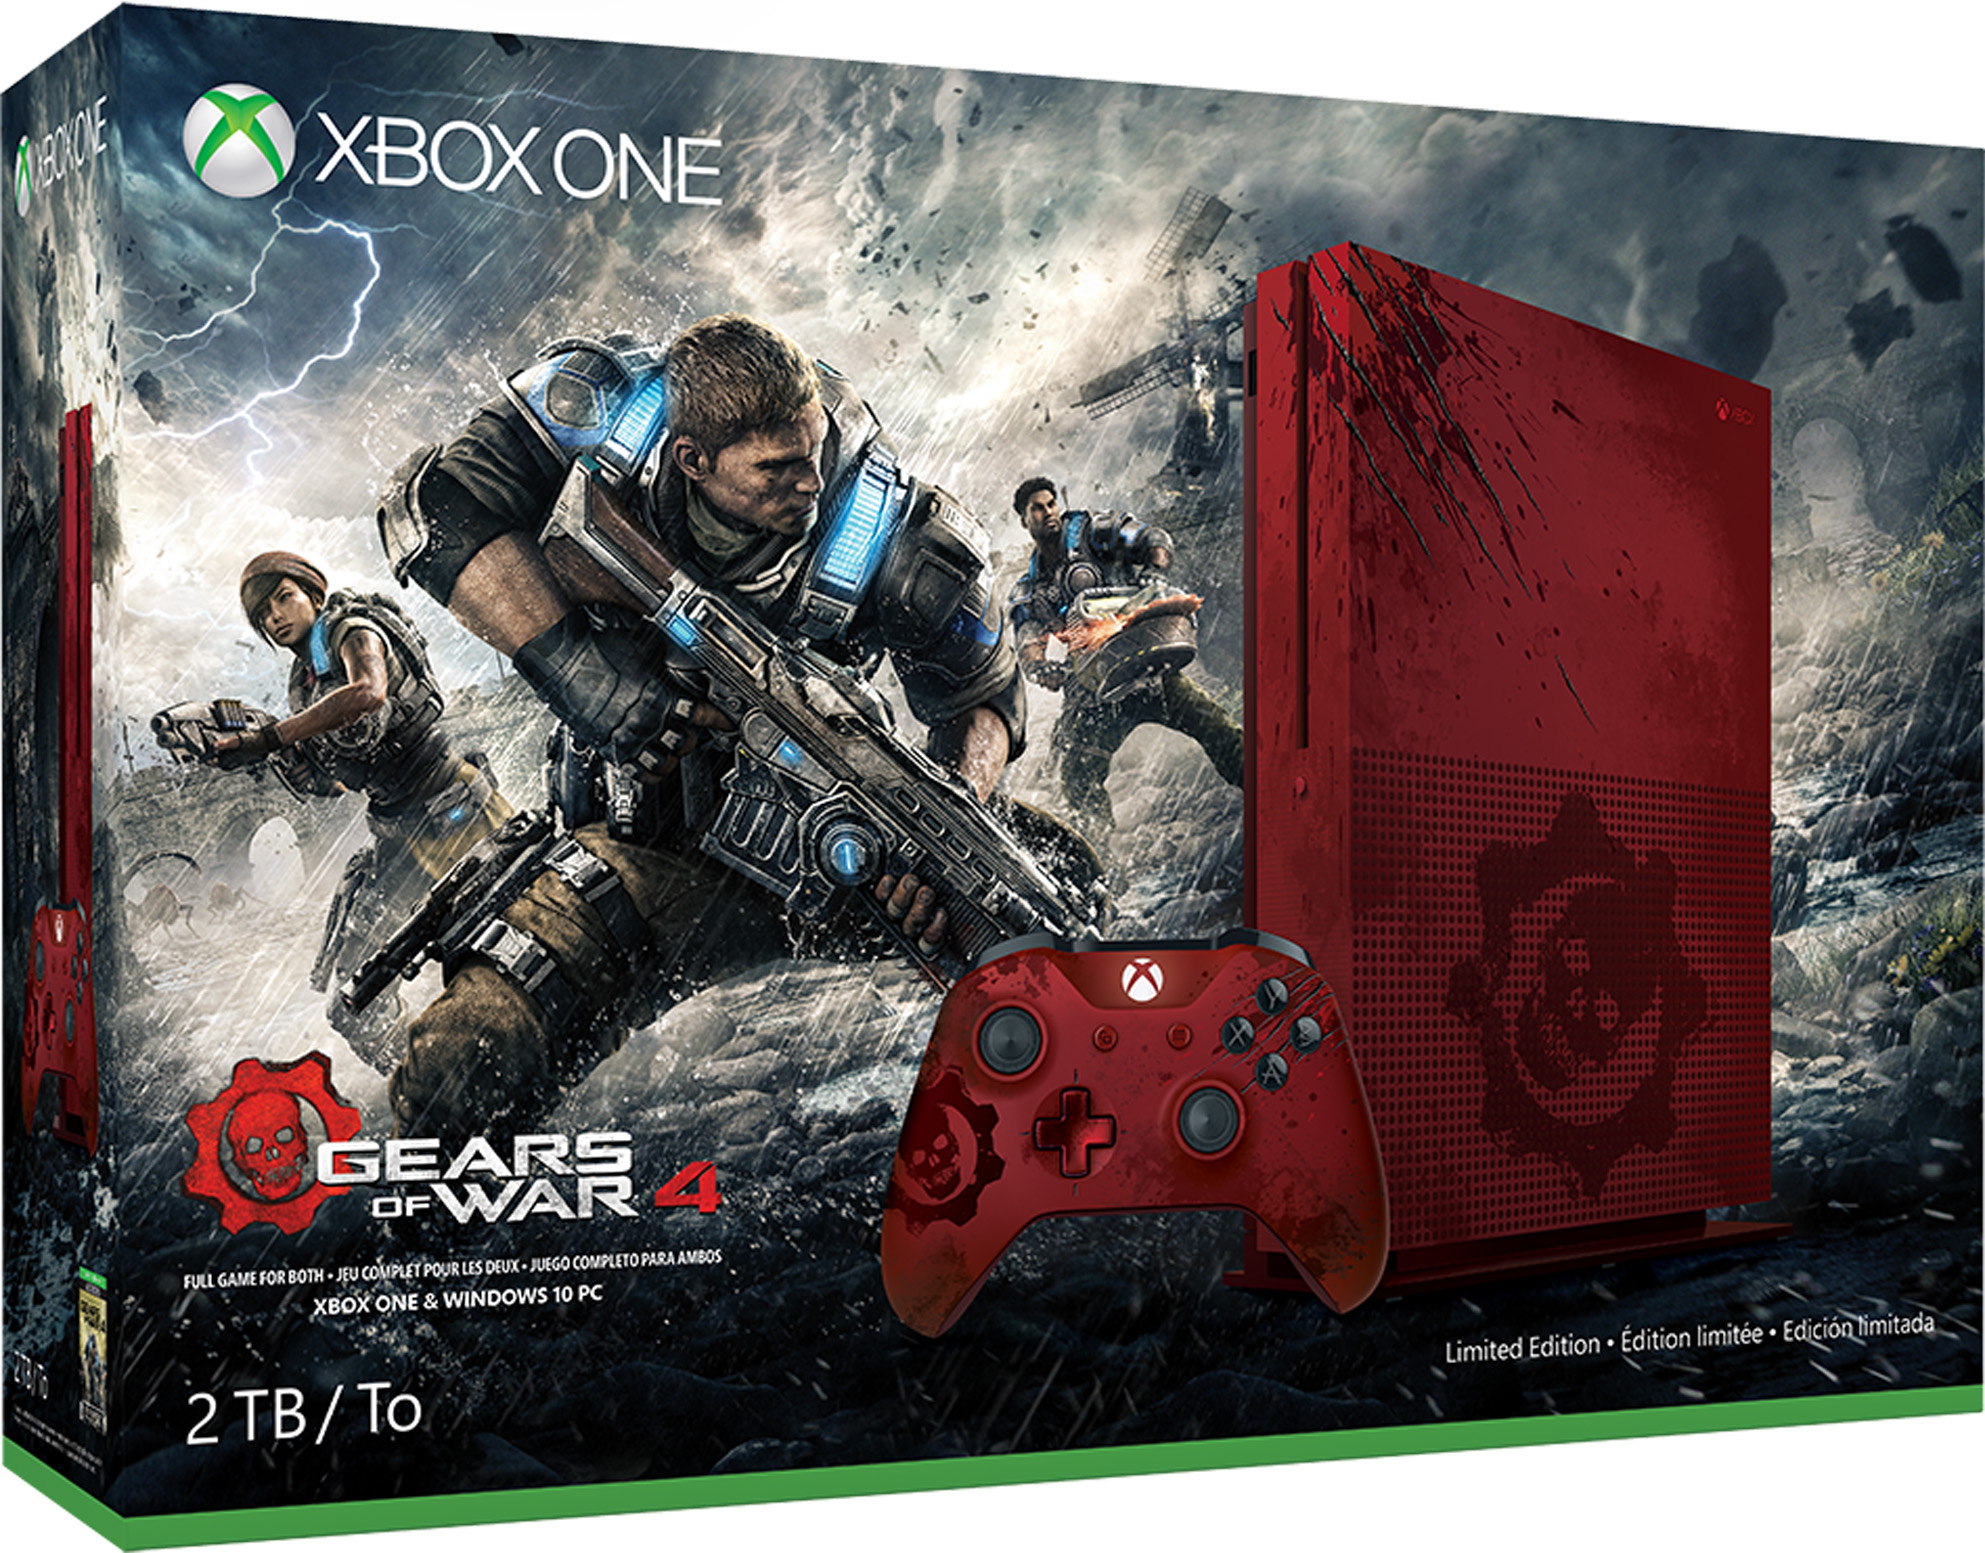 Xbox One S Console - Gears of War 4 Bundles